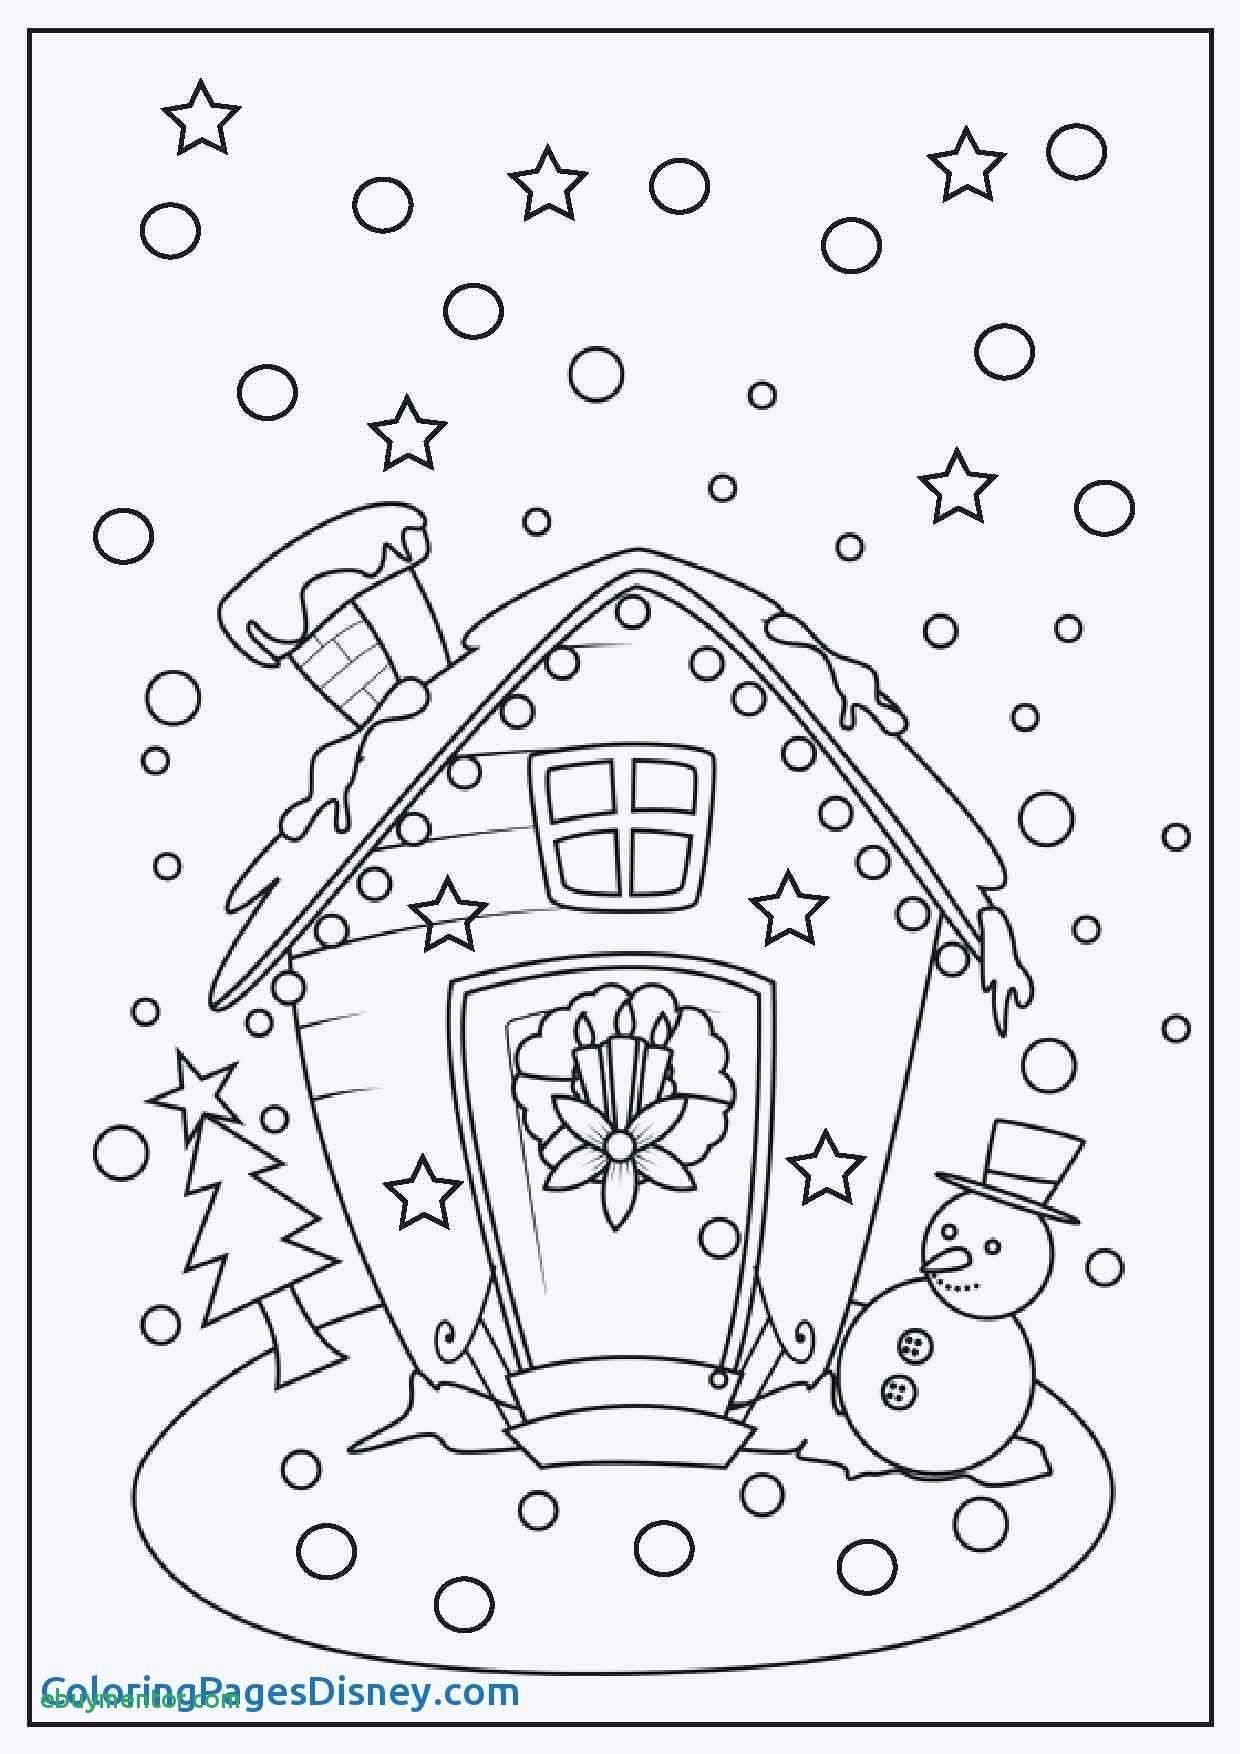 Religious Christmas Card Coloring Pages With Colouring For Preschoolers Printable Page